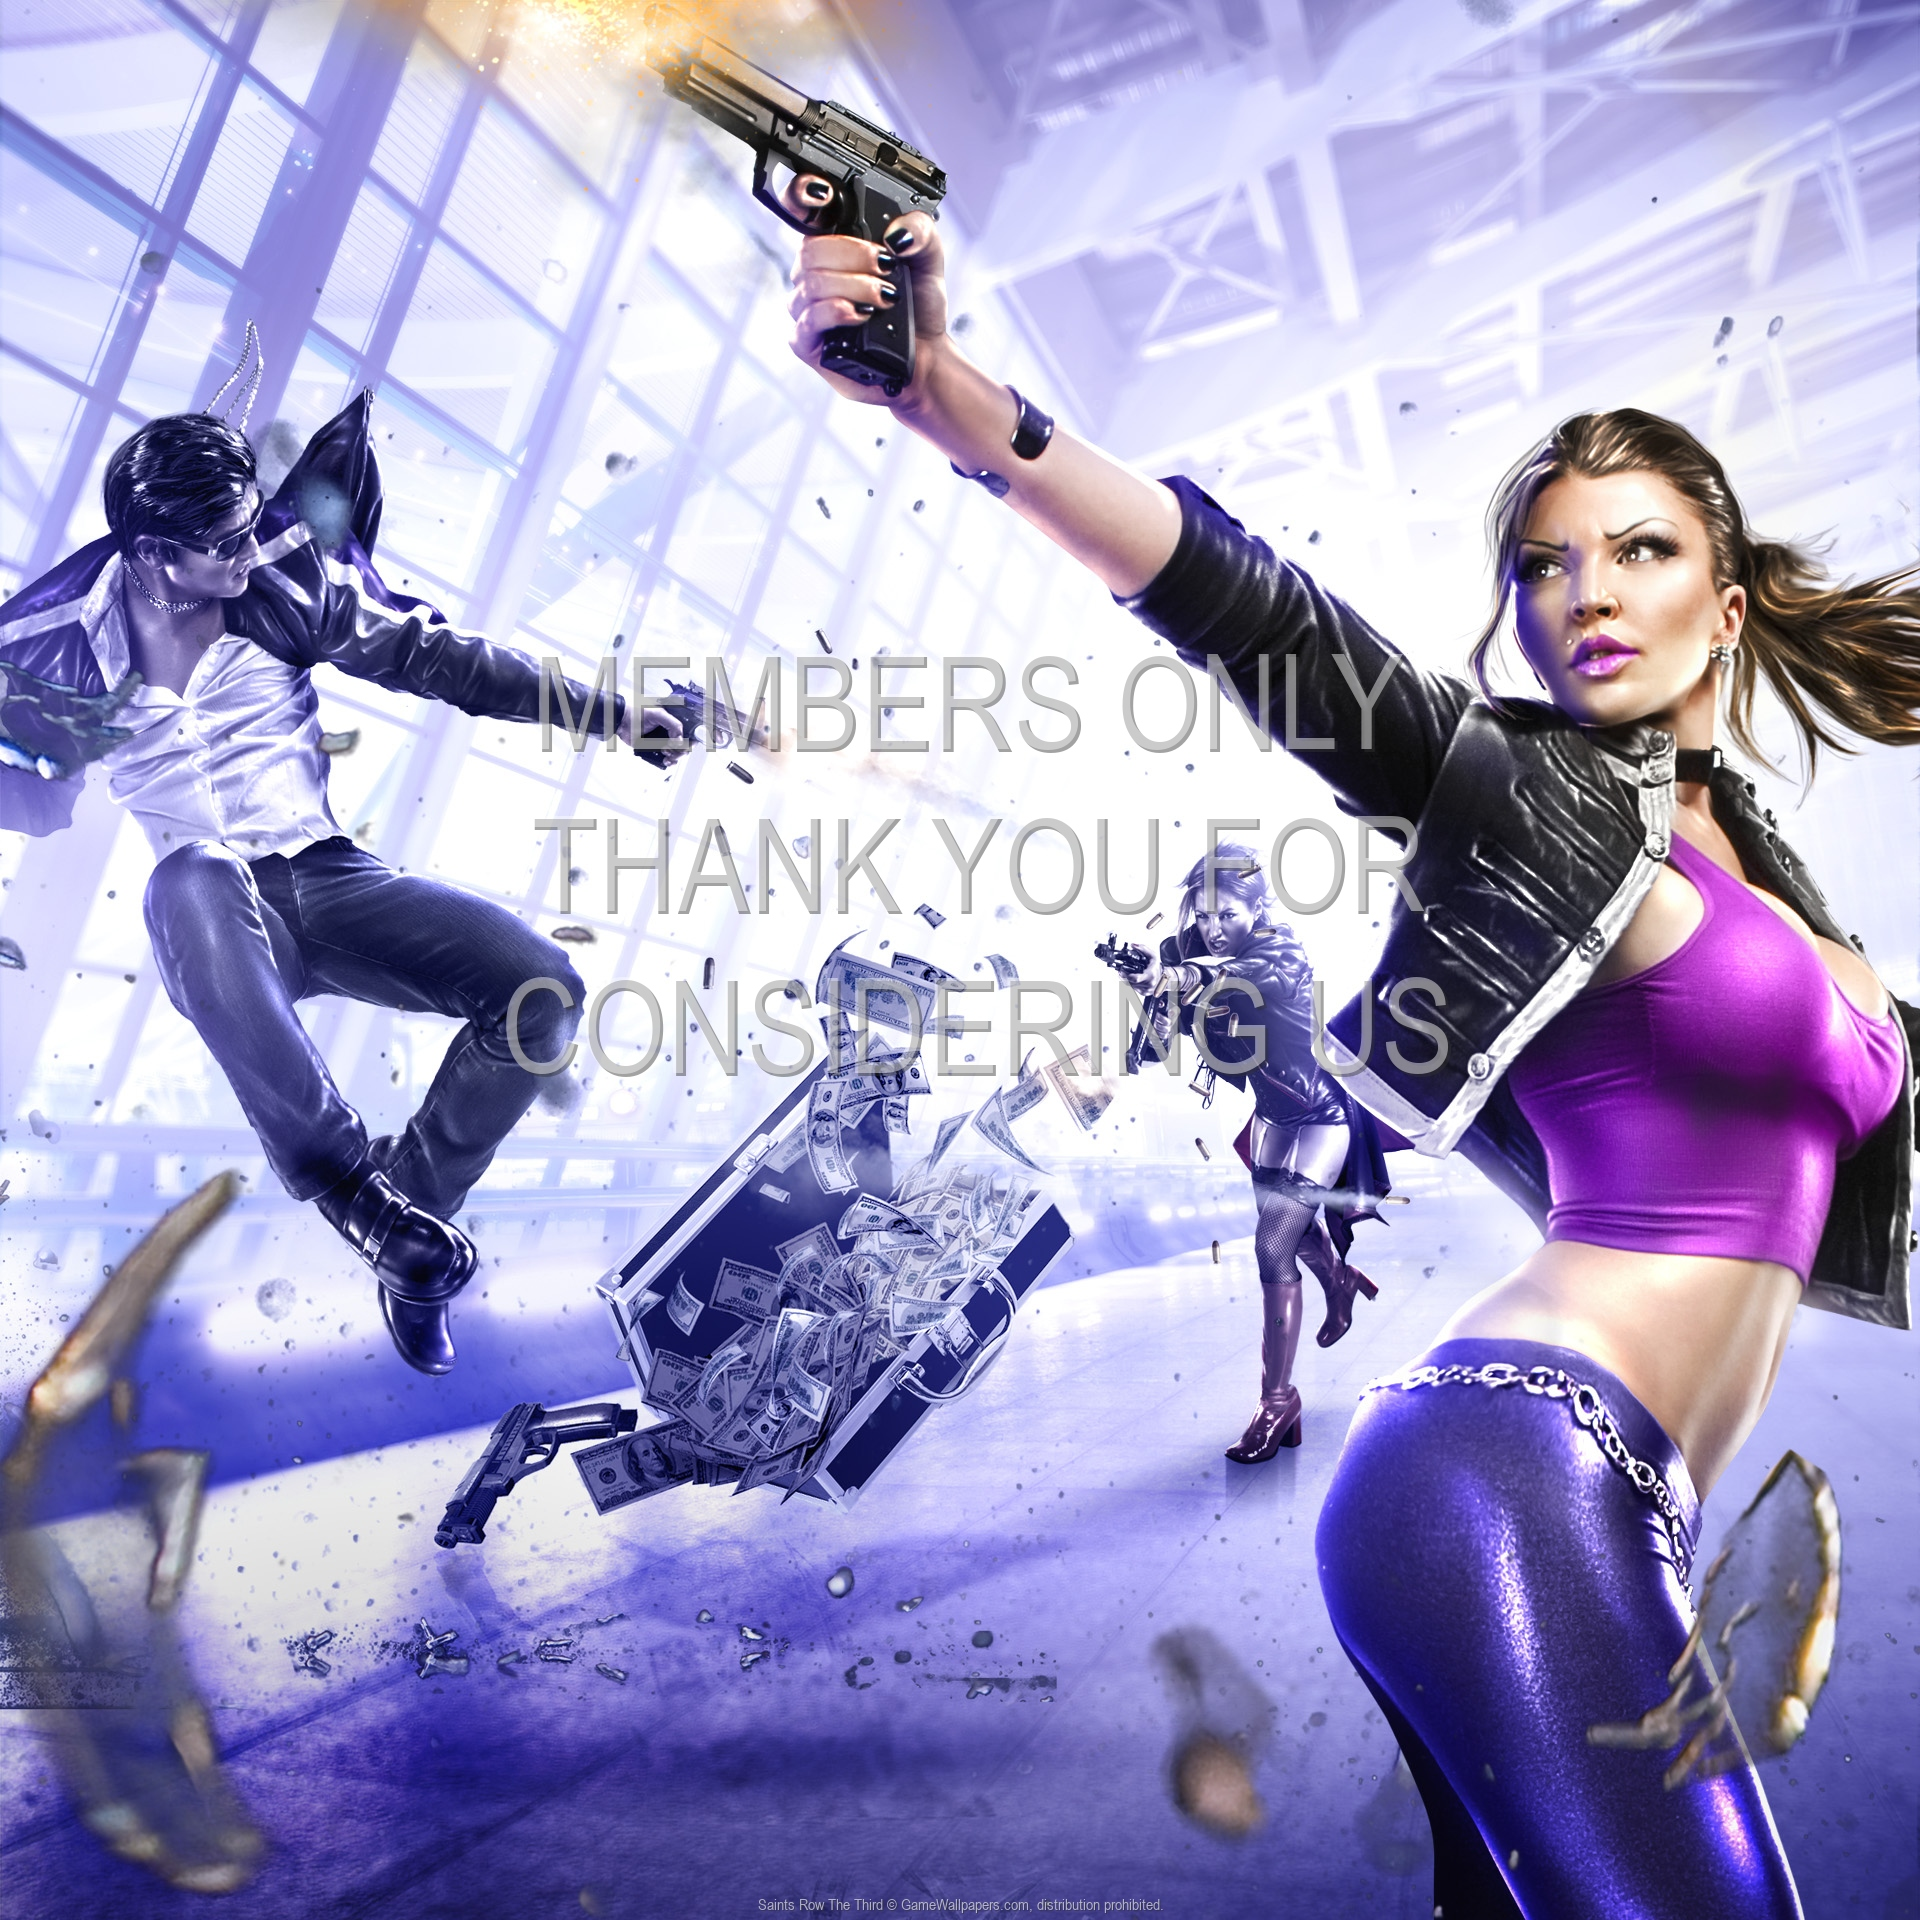 Saints Row: The Third 1920x1080 Mobile wallpaper or background 05